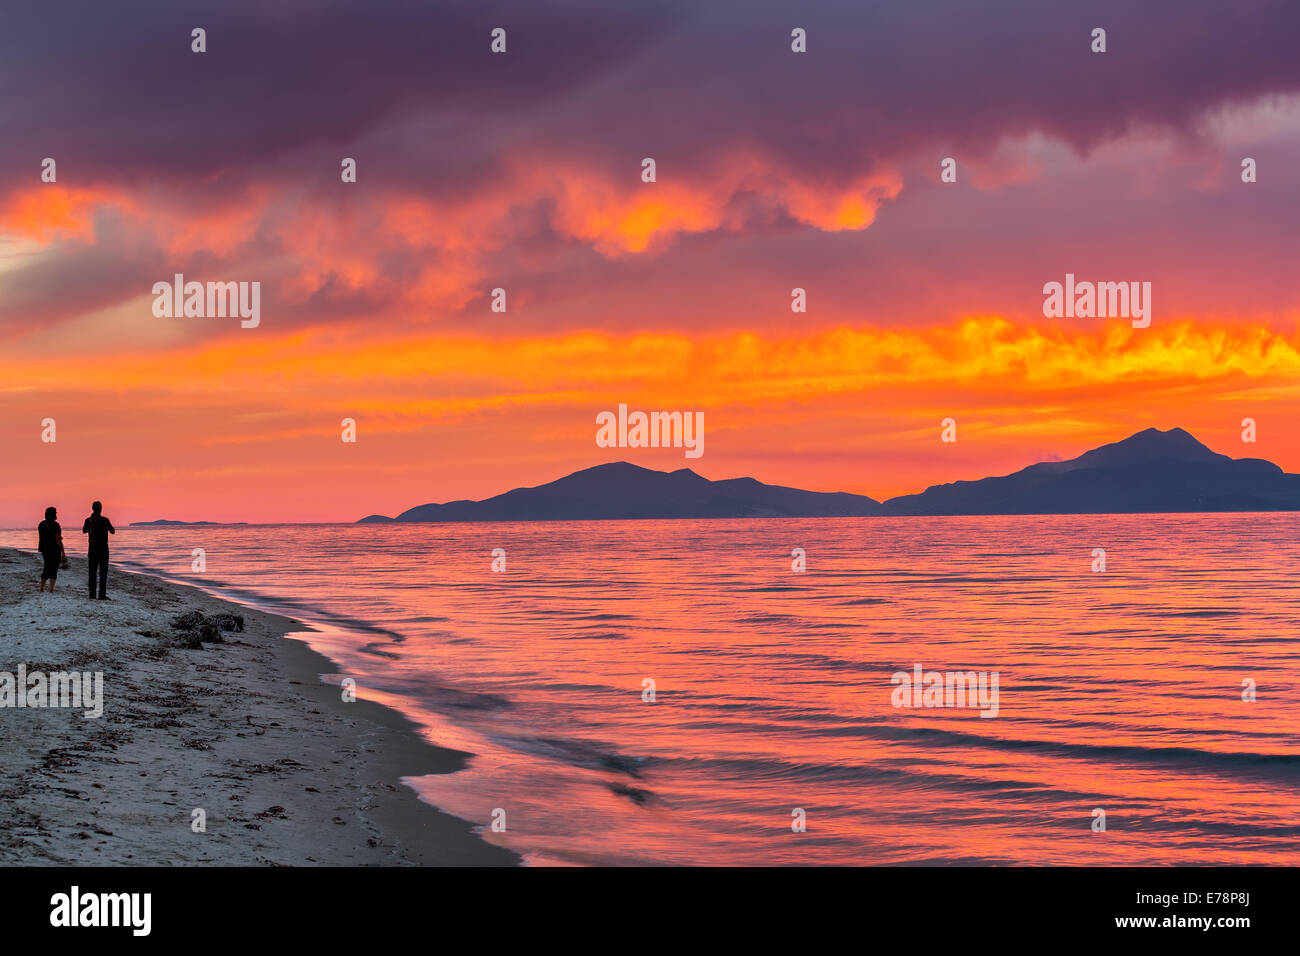 Sunset over sea in Greece - Stock Image